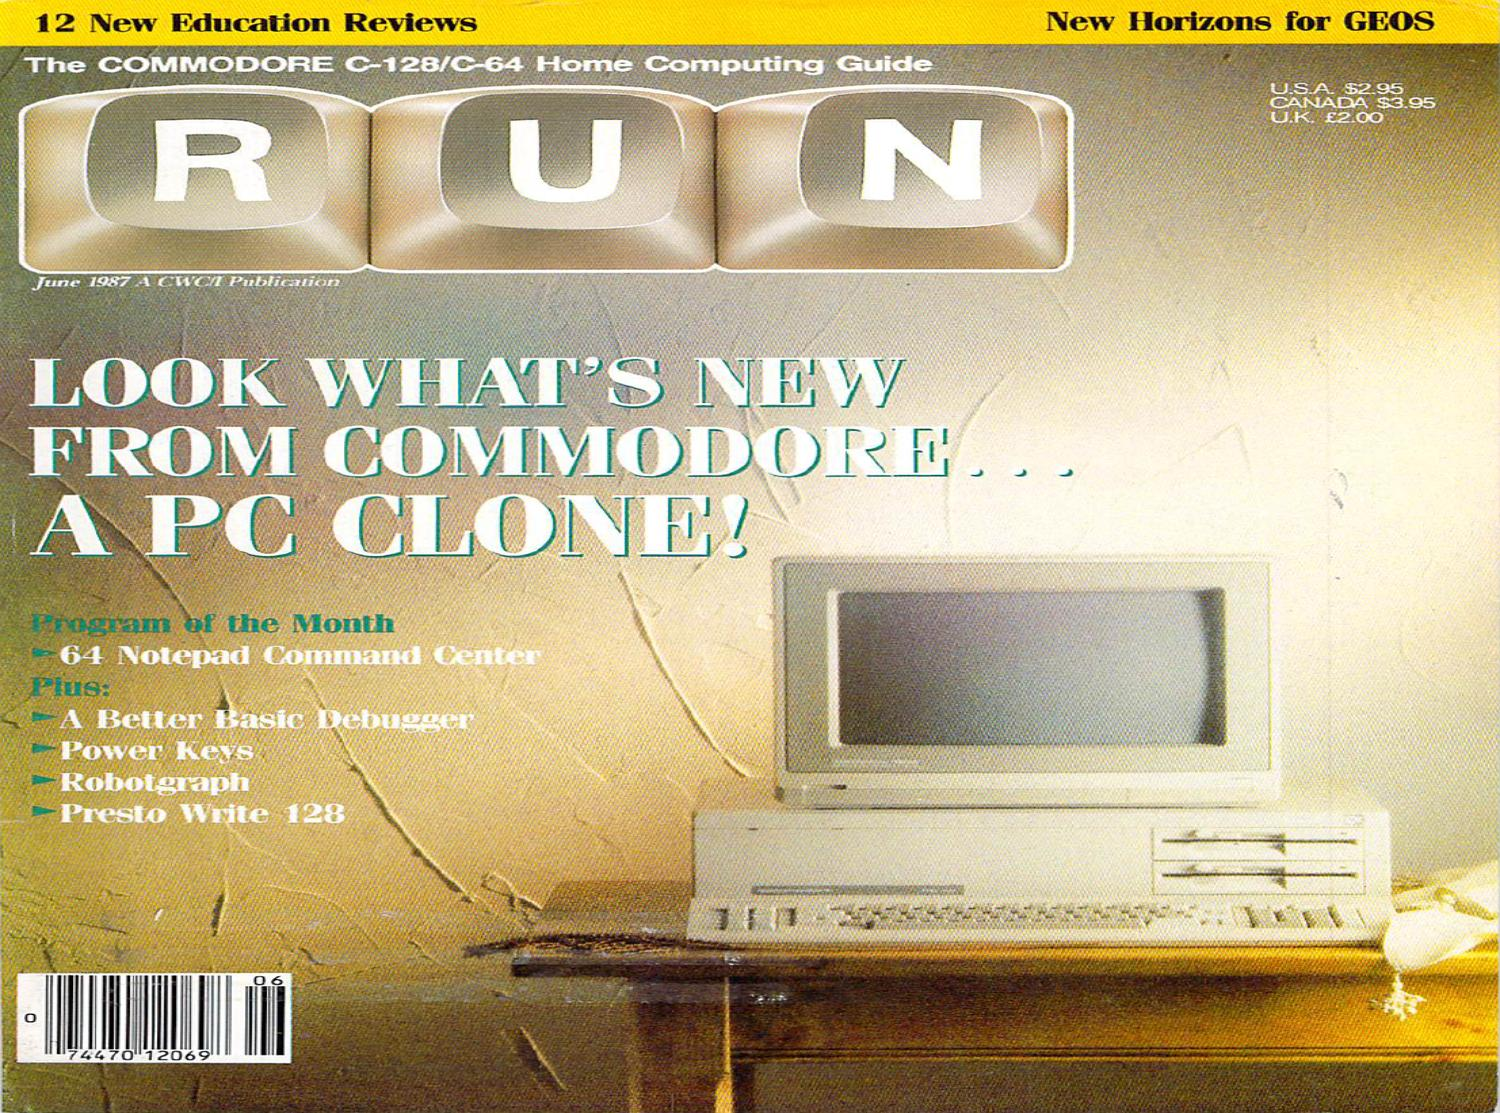 Run Issue 42 1987 Jun By Zetmoon Issuu Mere Et Moi Geos Navy Bear S